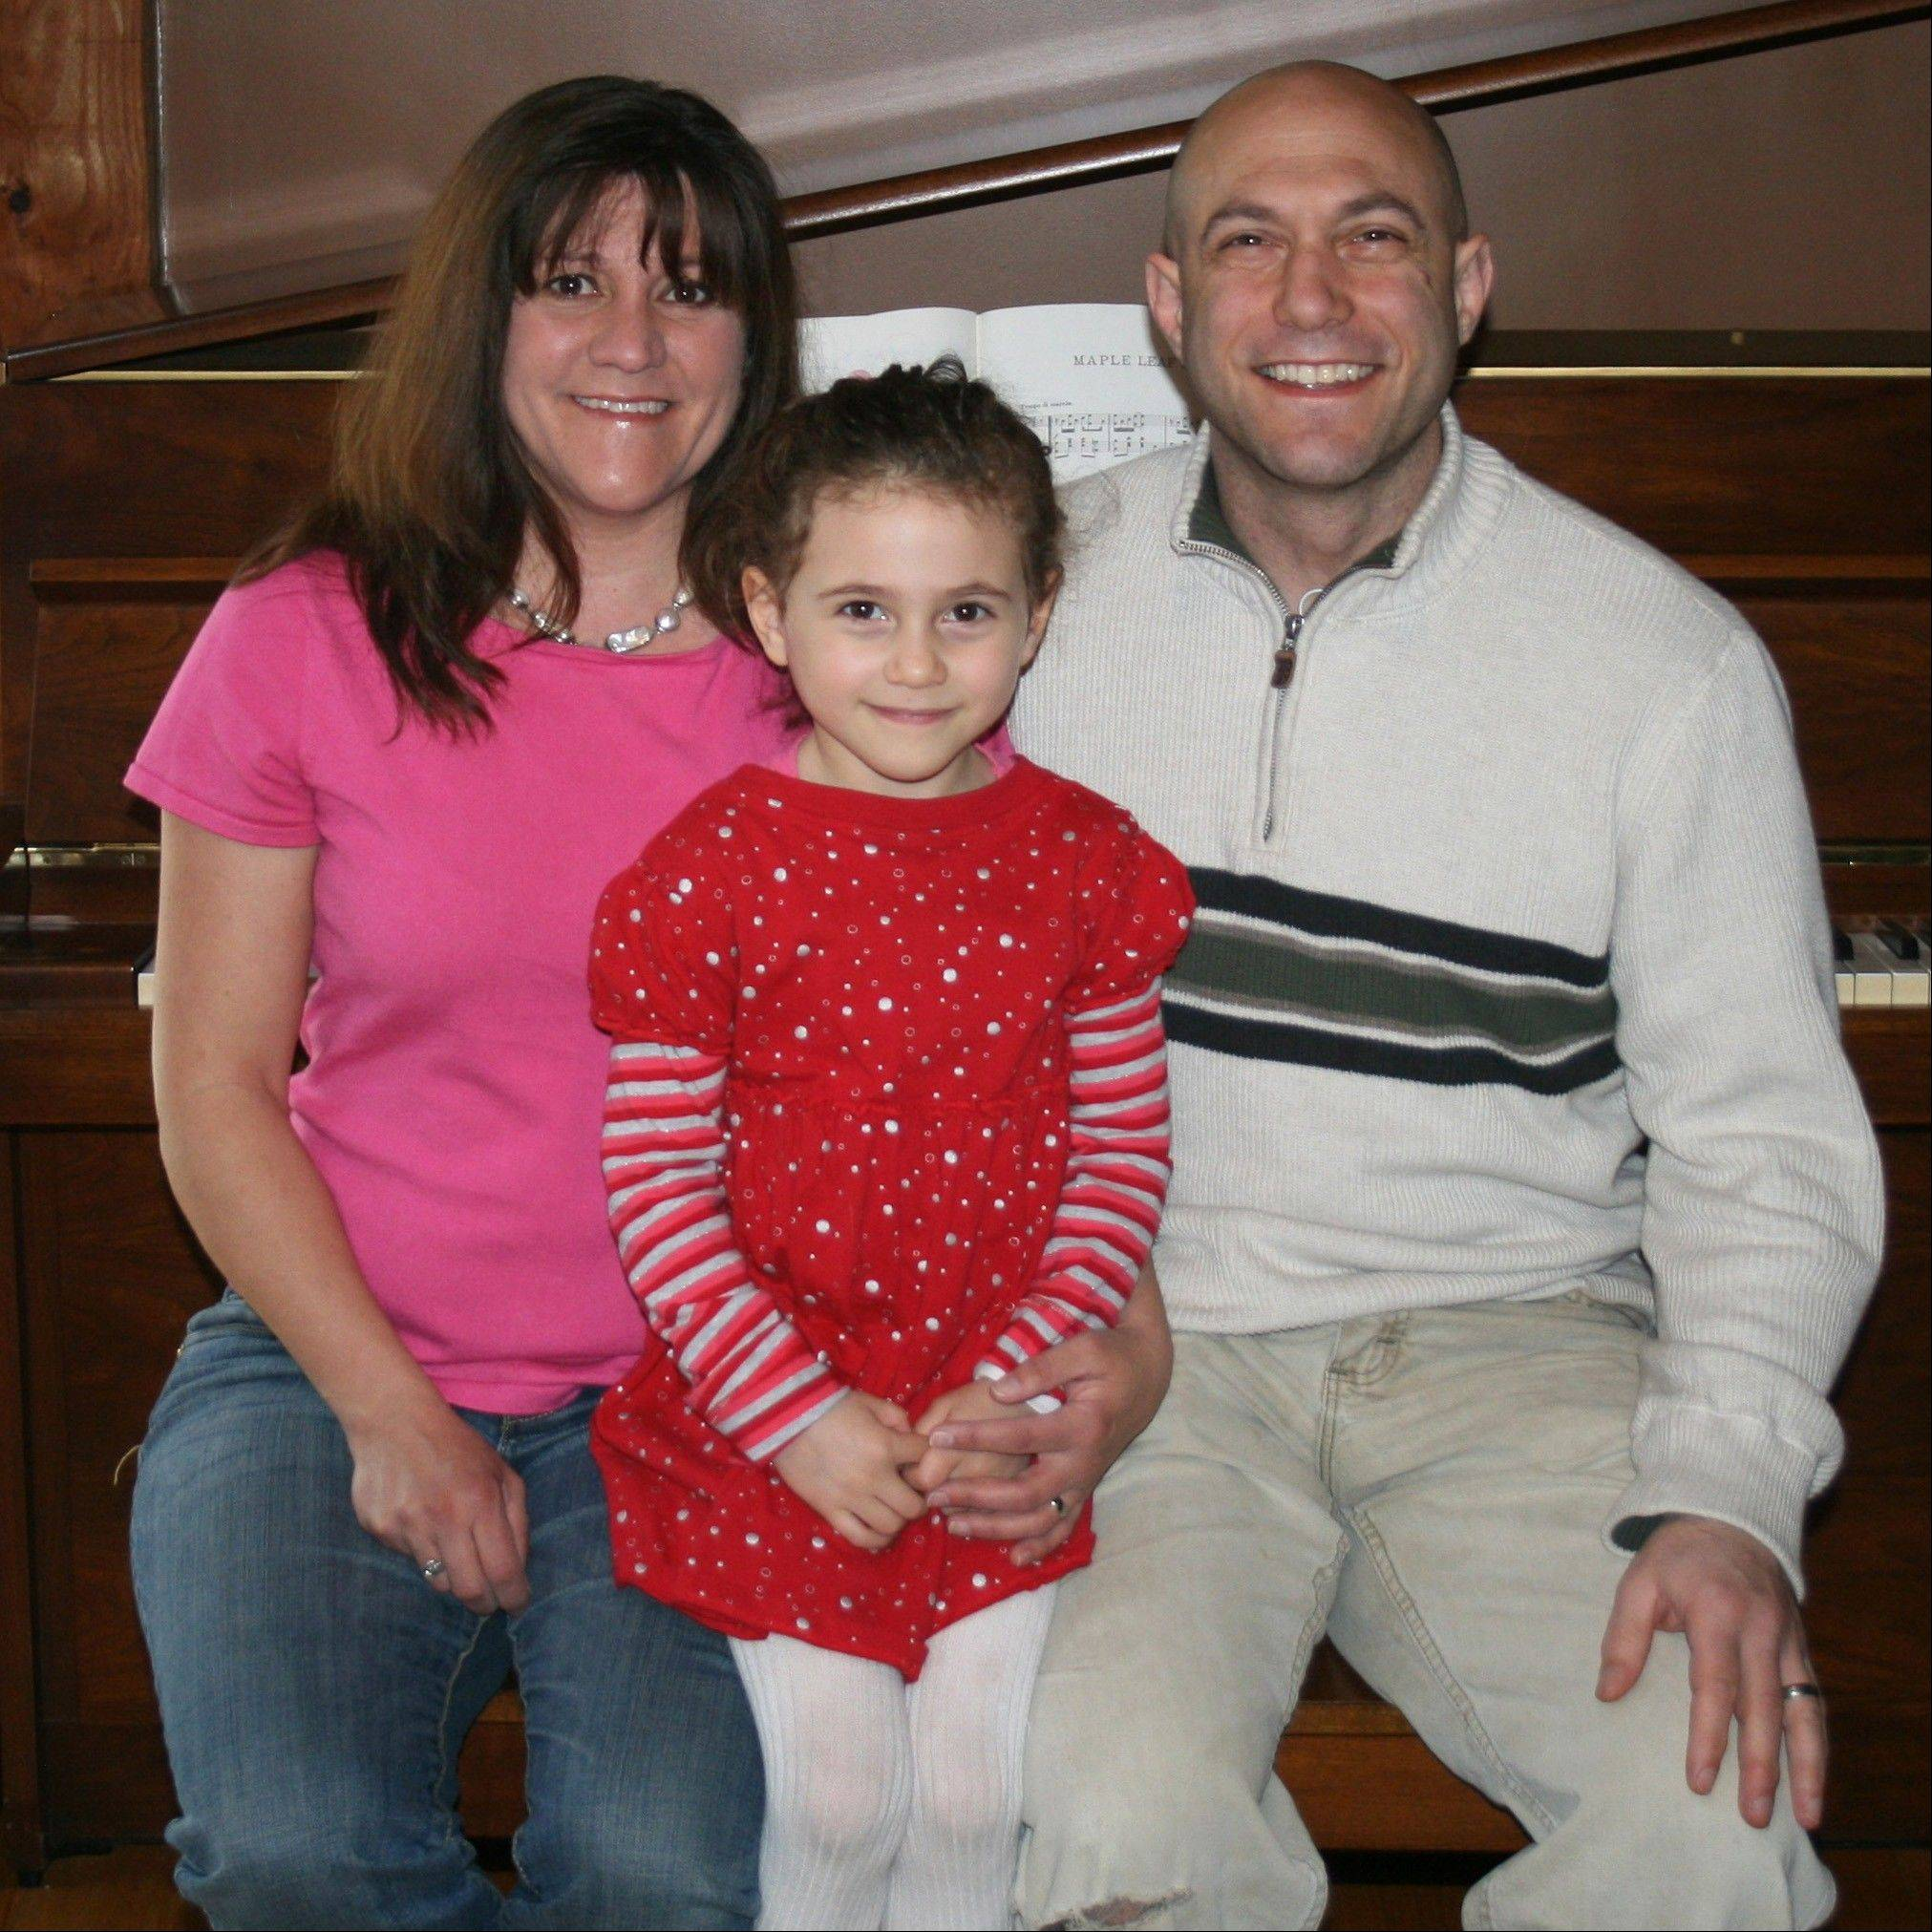 "This April 2012 photo provided by the family shows Avielle Richman, center, with her parents Jennifer Hensel and Jeremy Richman in Boston. Avielle was among the 20 children killed in the Dec. 14, 2012 Sandy Hook Elementary School shooting. In On Labor Day 2013, Hensel and Richman will walk in Newtown's parade behind a banner for the foundation named after their daughter, which supports research into the brain pathologies behind violence. It also promotes community outreach, so that isolated, vulnerable individuals, like the accused shooter, are not ignored. ""I feel that a way for us to heal is to pull into the community,"" Hensel said. So they'll march, thinking of their daughter, her husband said. ""Avielle loved parades."""